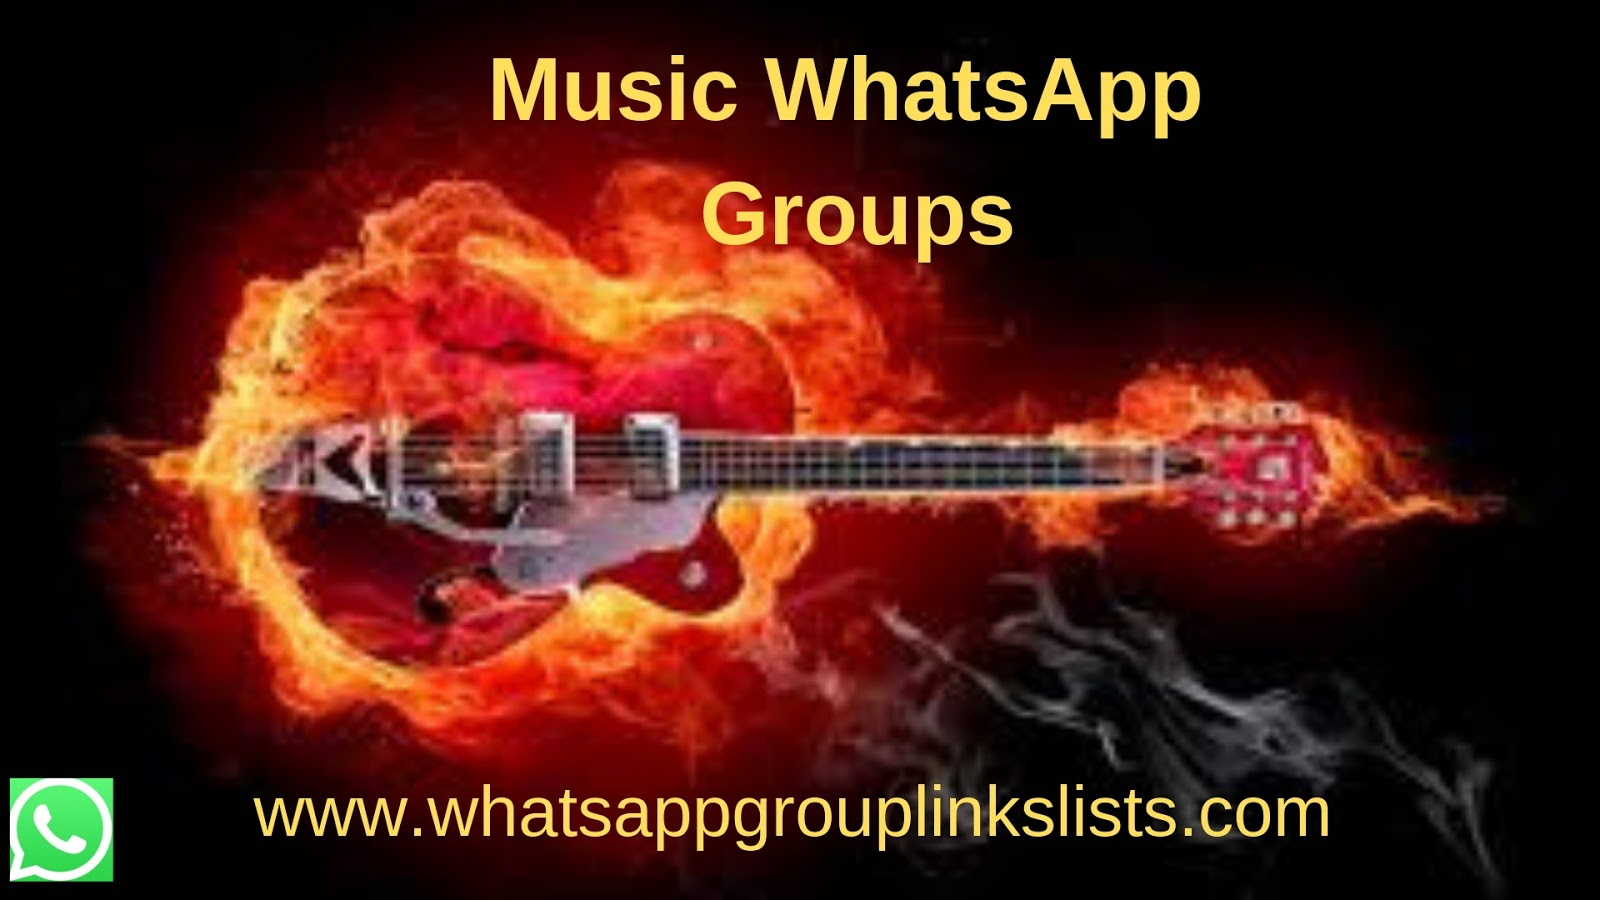 Join Music WhasApp Group links list